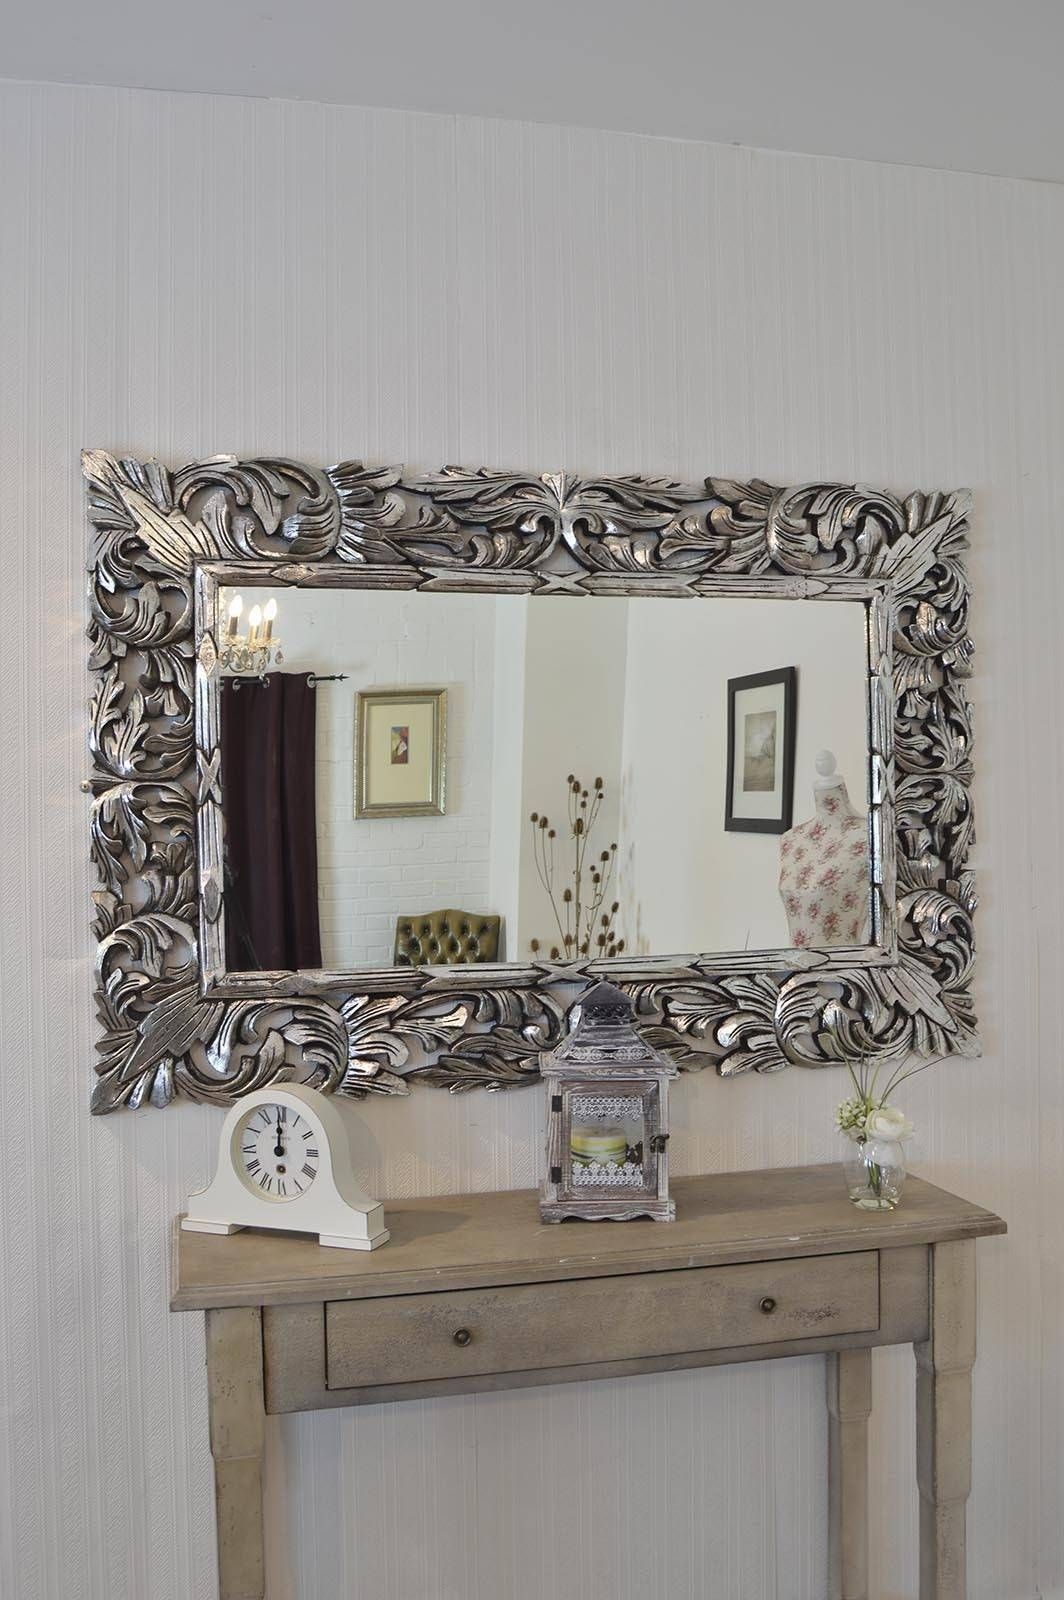 Large Silver Wall Mirror 57 Nice Decorating With Large Ornate Wall in Silver Ornate Wall Mirrors (Image 15 of 25)